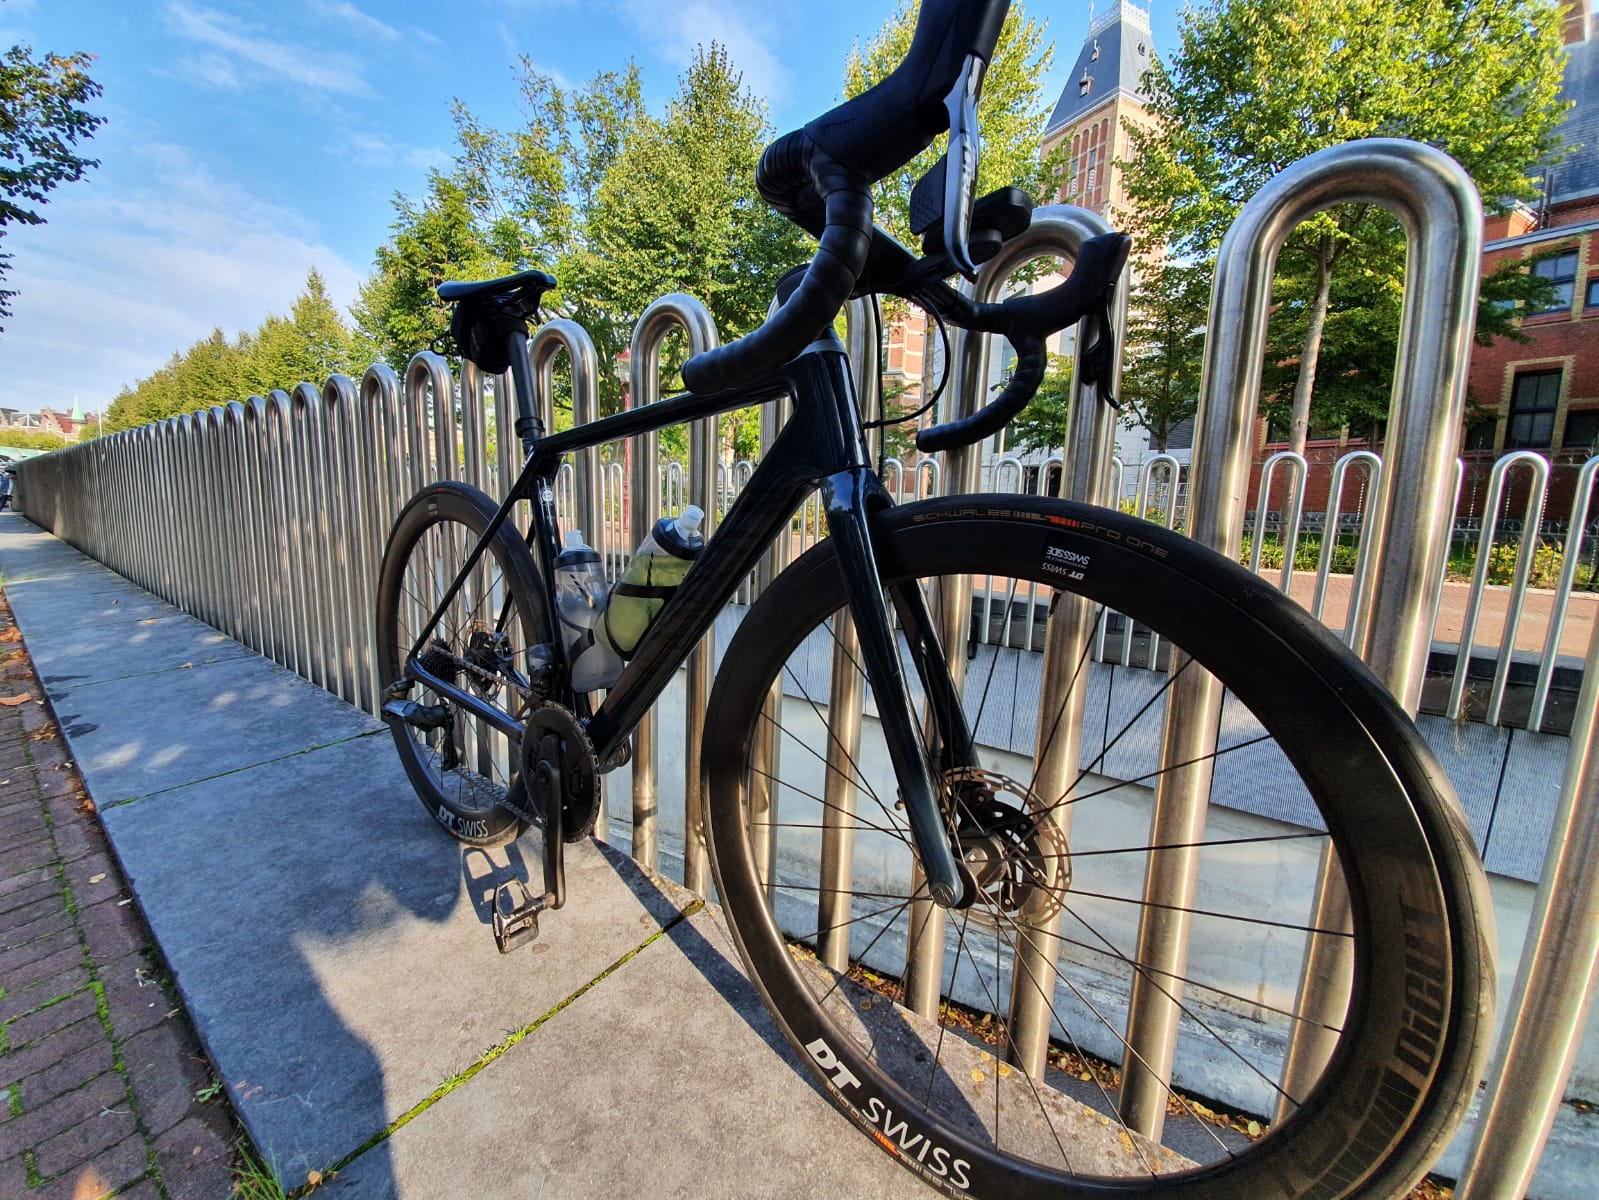 dt swiss, wheels, fast, bike